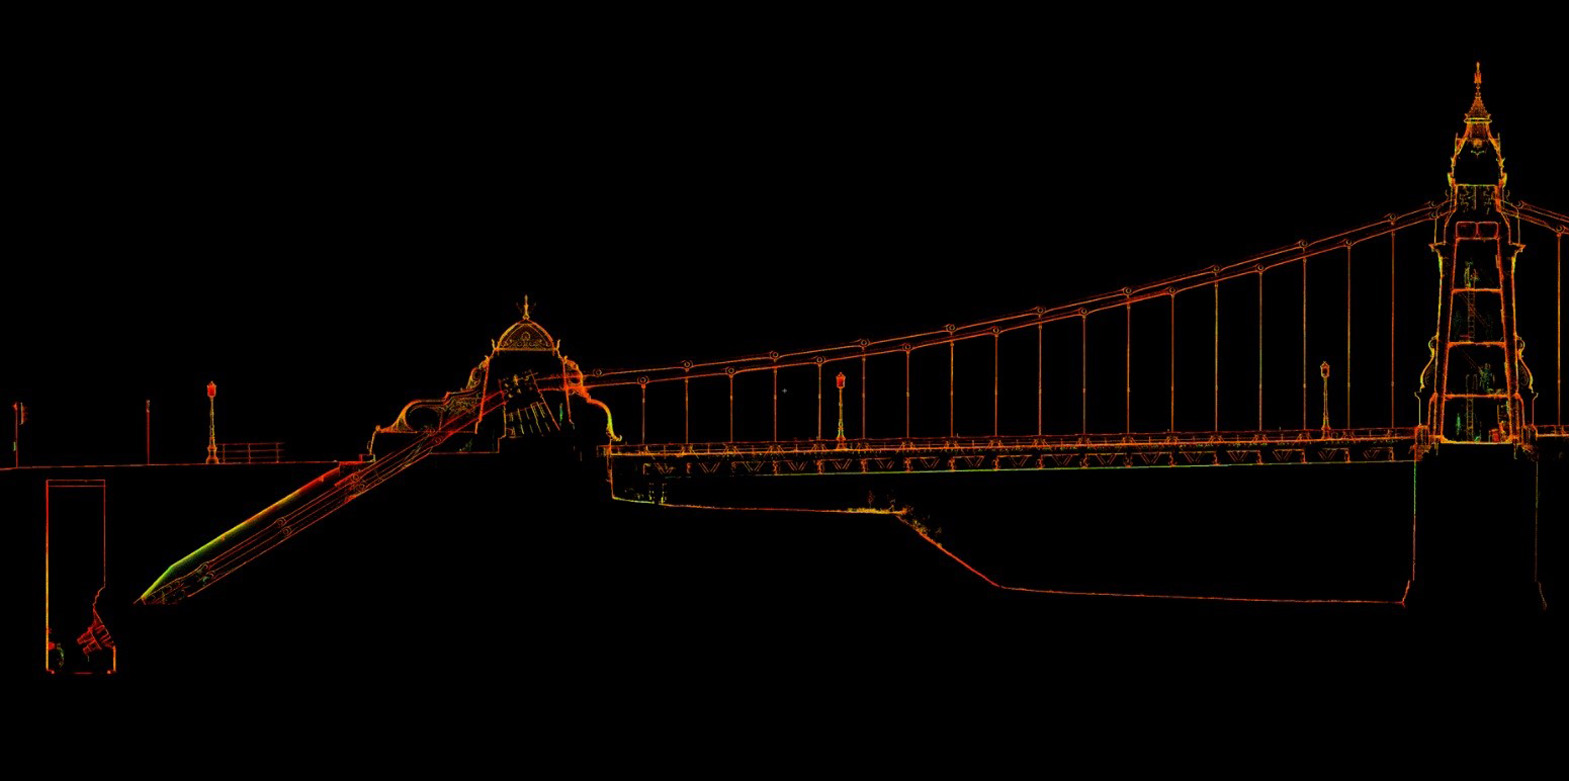 Section through intensity pointcloud showing towers, chains, saddles, chain tunnels and anchorages of Hammersmith Bridge